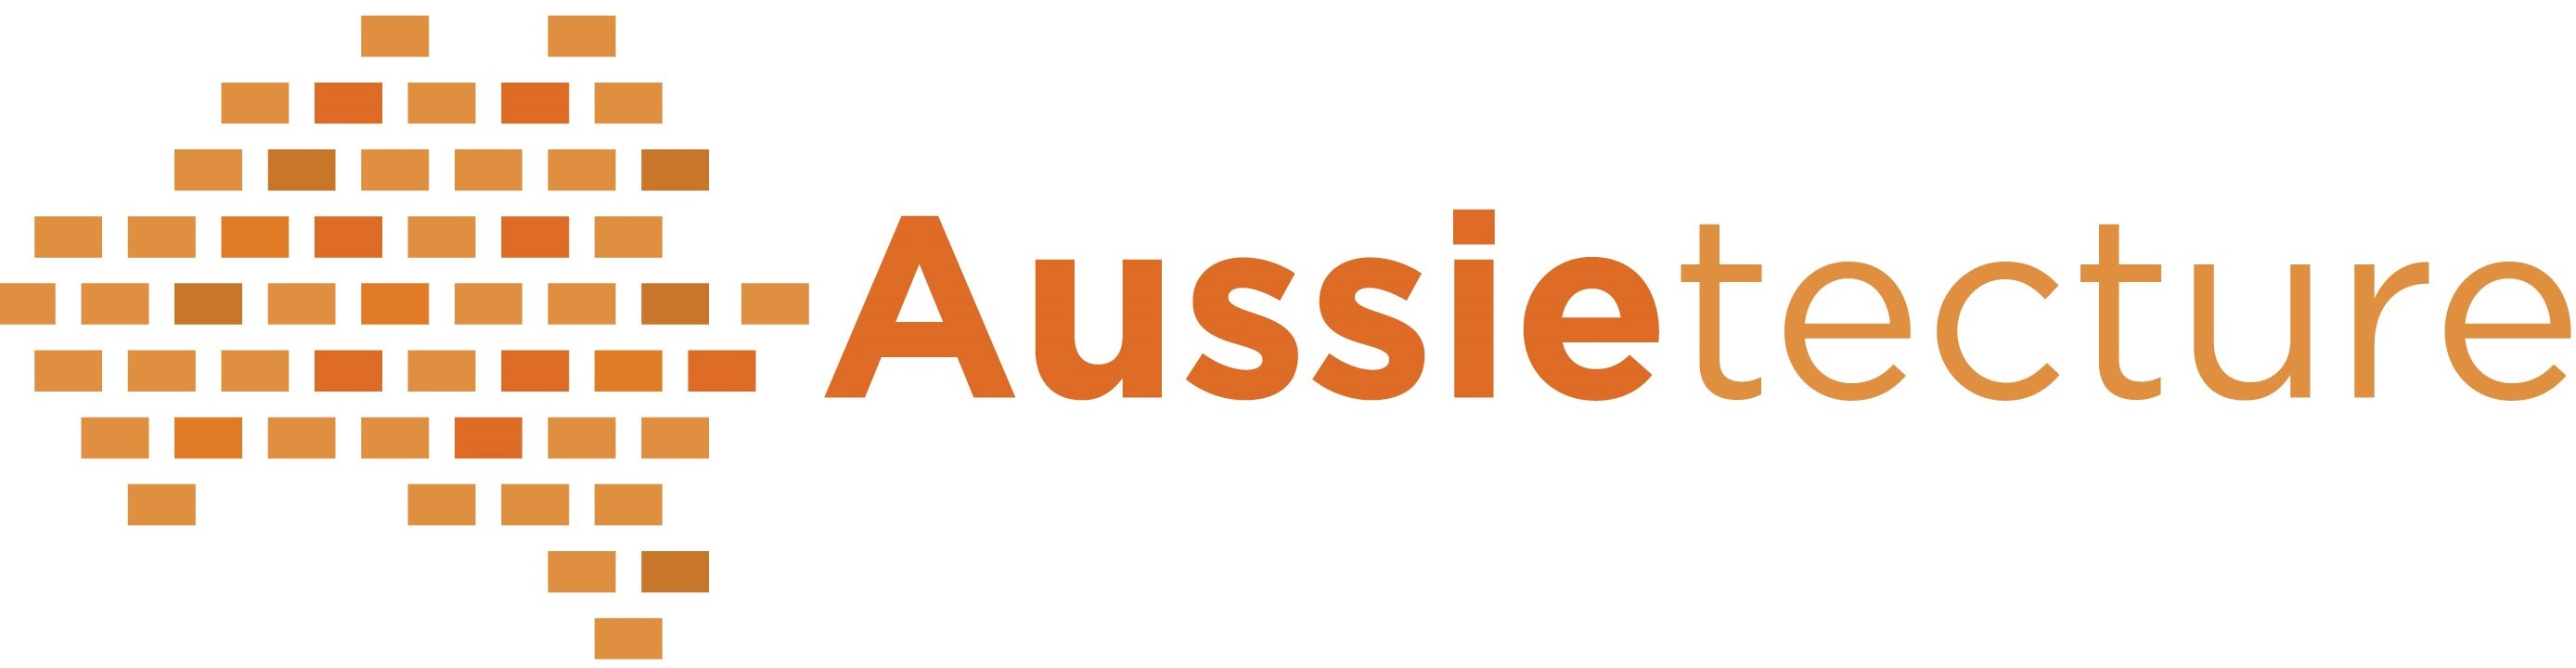 Logo of Aussietecture australian sandstone supplier